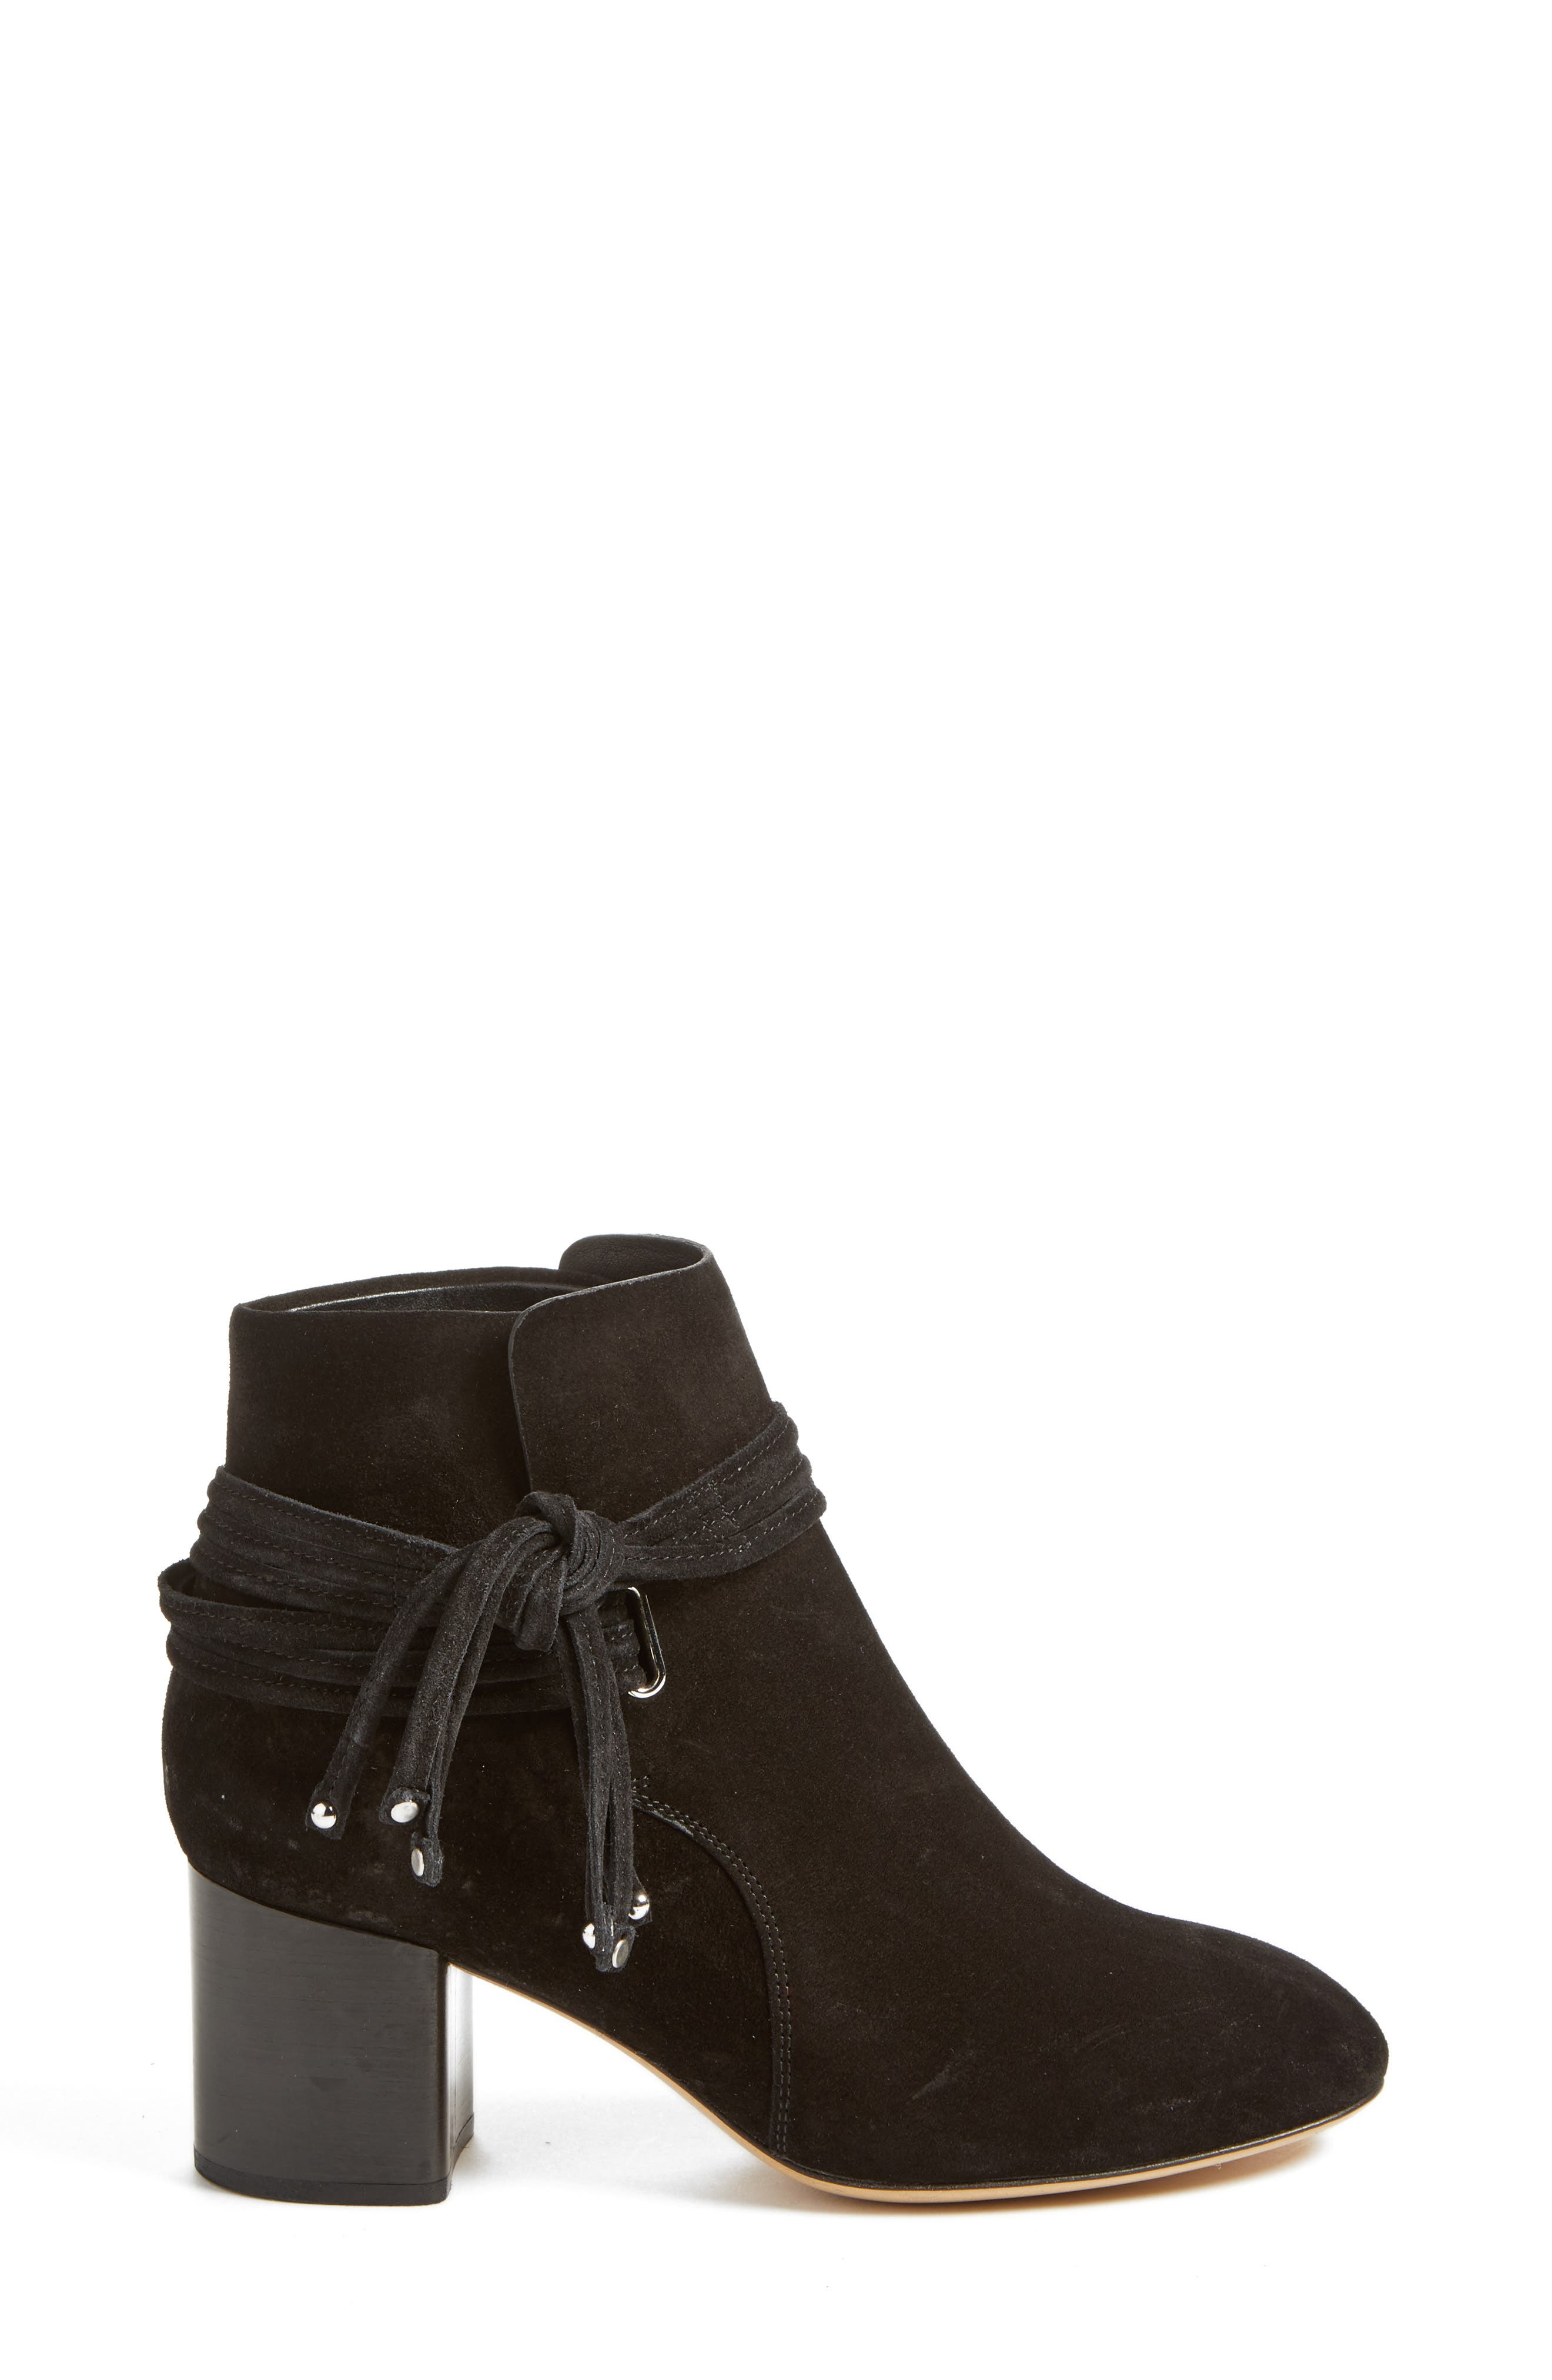 Dalia II Tie-Strap Bootie,                             Alternate thumbnail 3, color,                             008